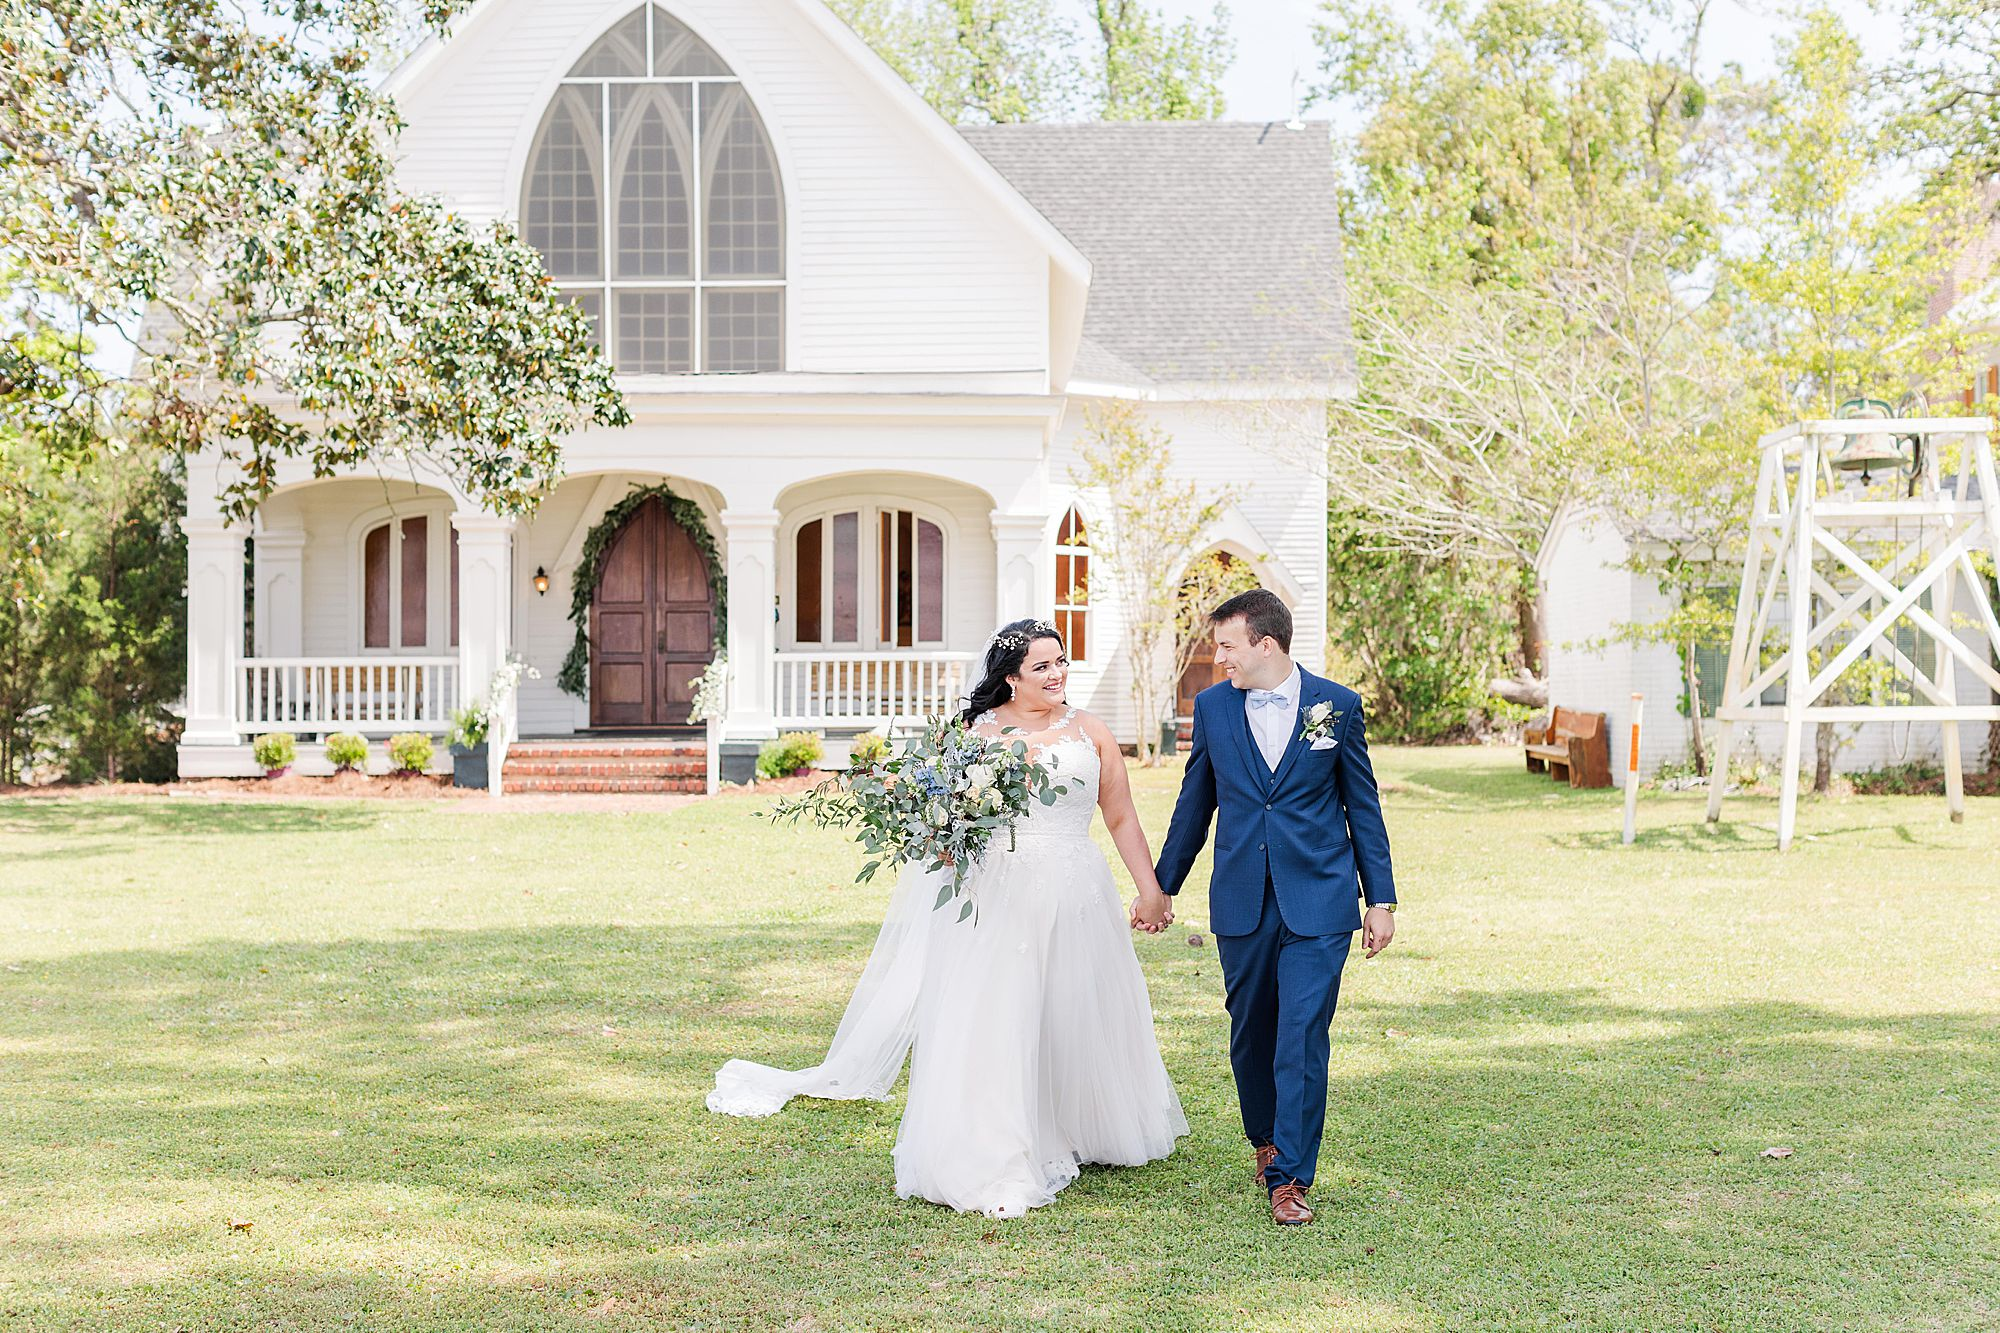 bride and groom walk in front of church